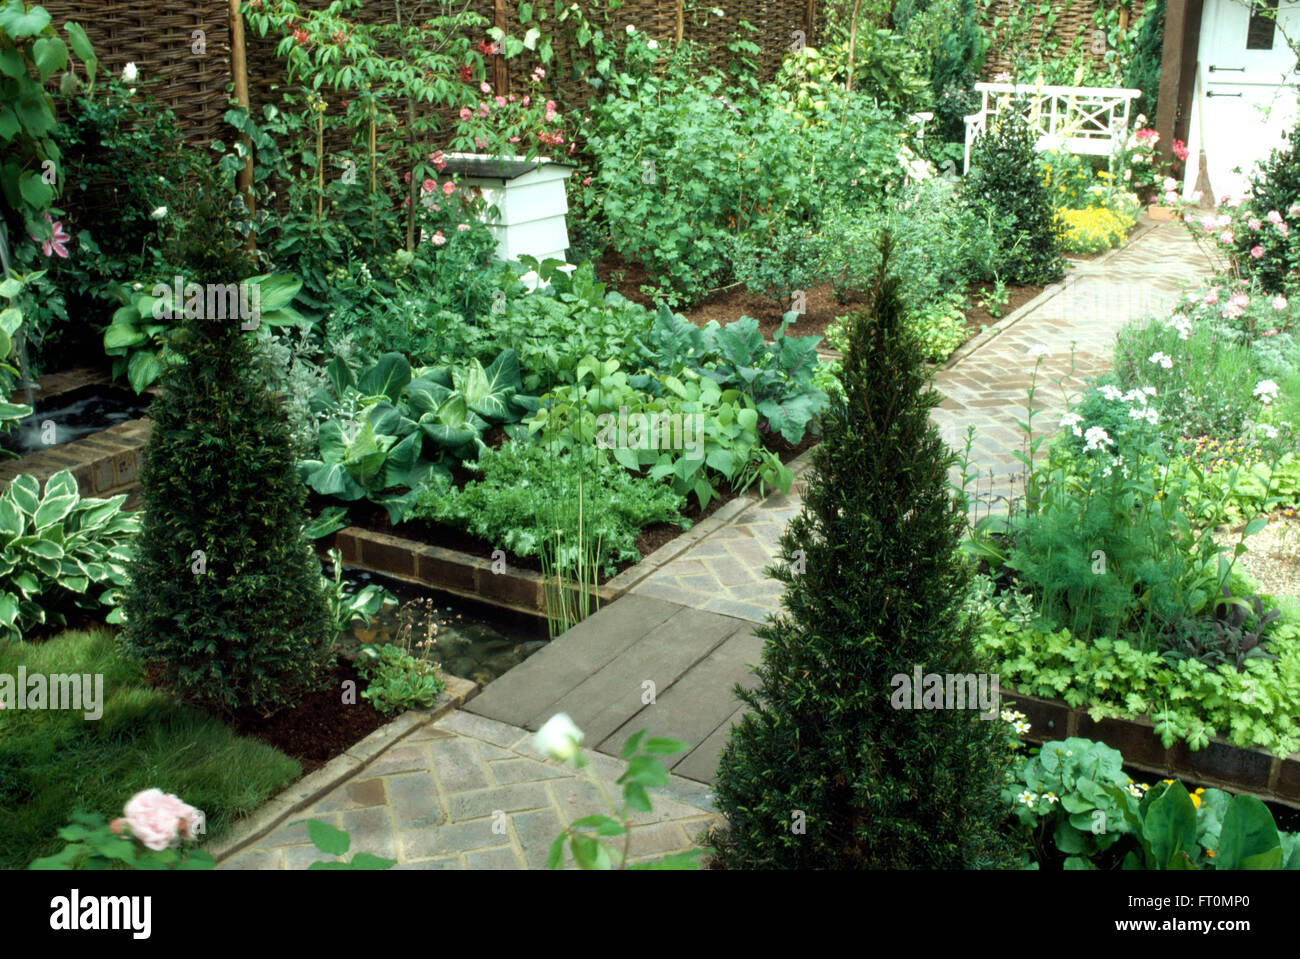 Box Pyramids Either Side Of A Paved Path In Small Well Maintained Vegetable Garden With White Bee Hive And Stream